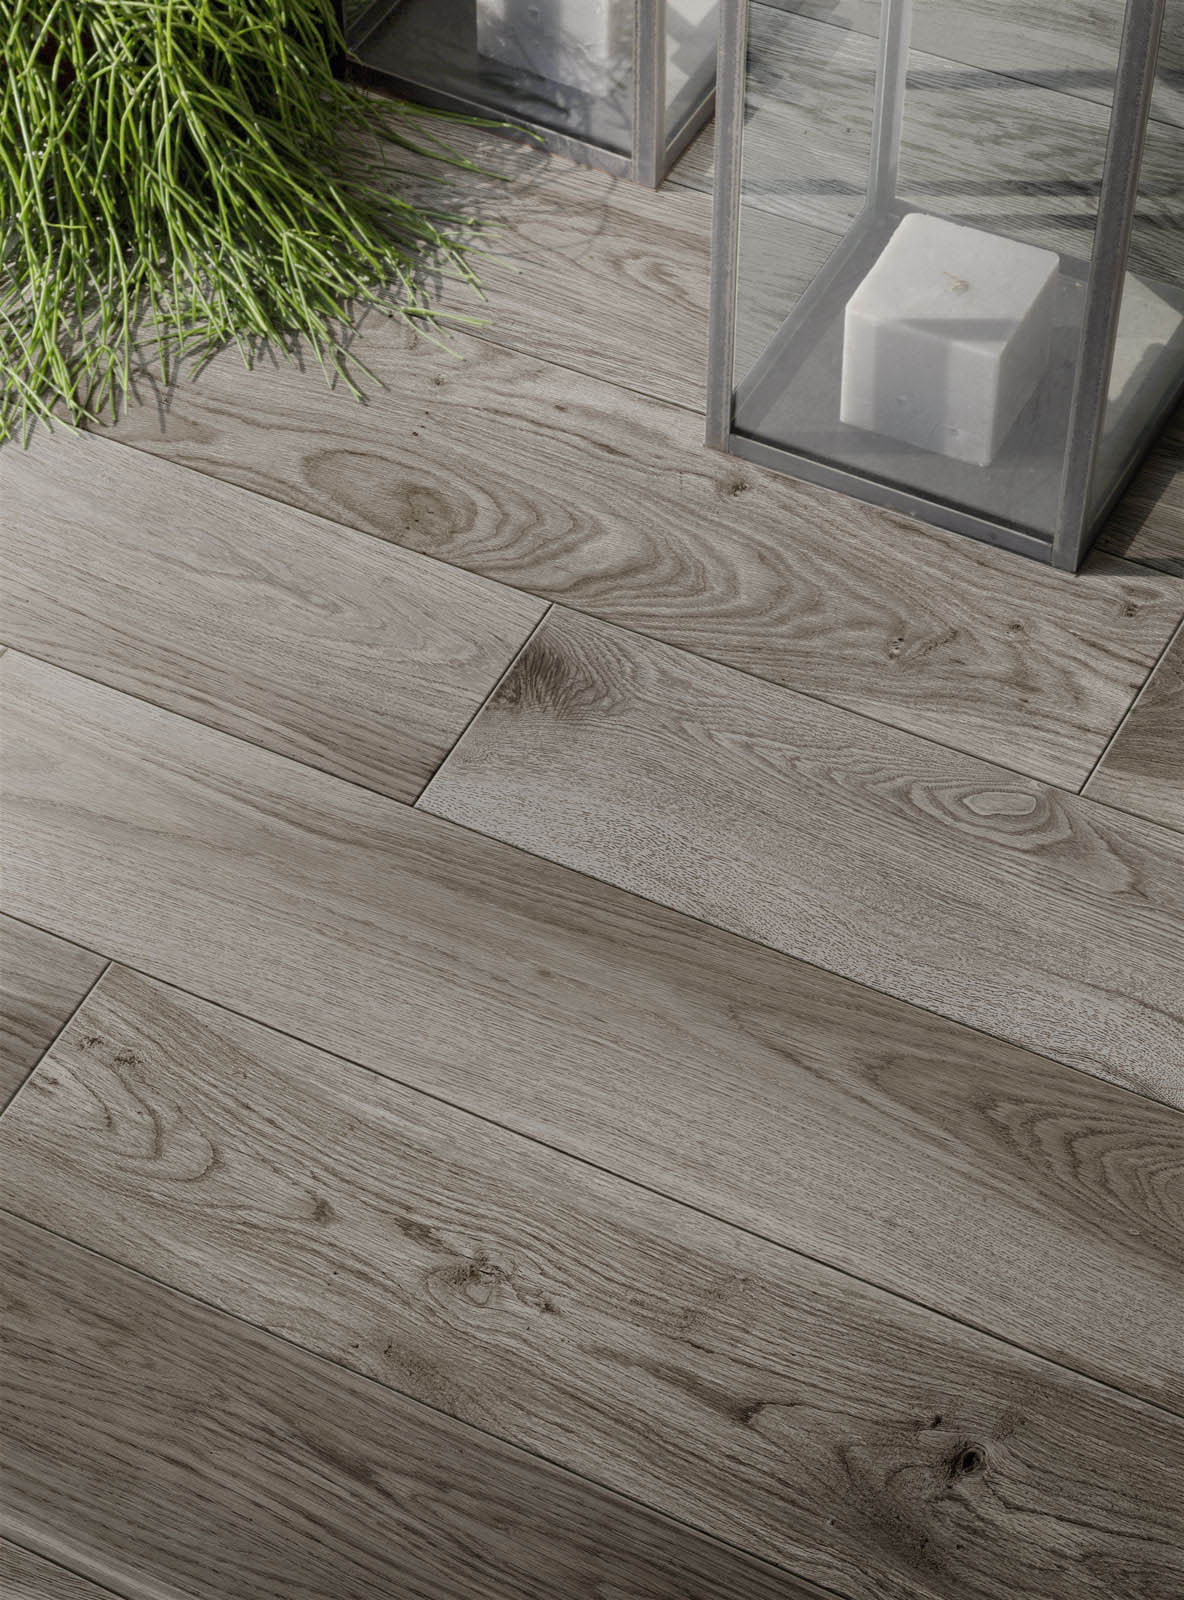 Wood effect and hardwood porcelain stoneware marazzi Marazzi tile